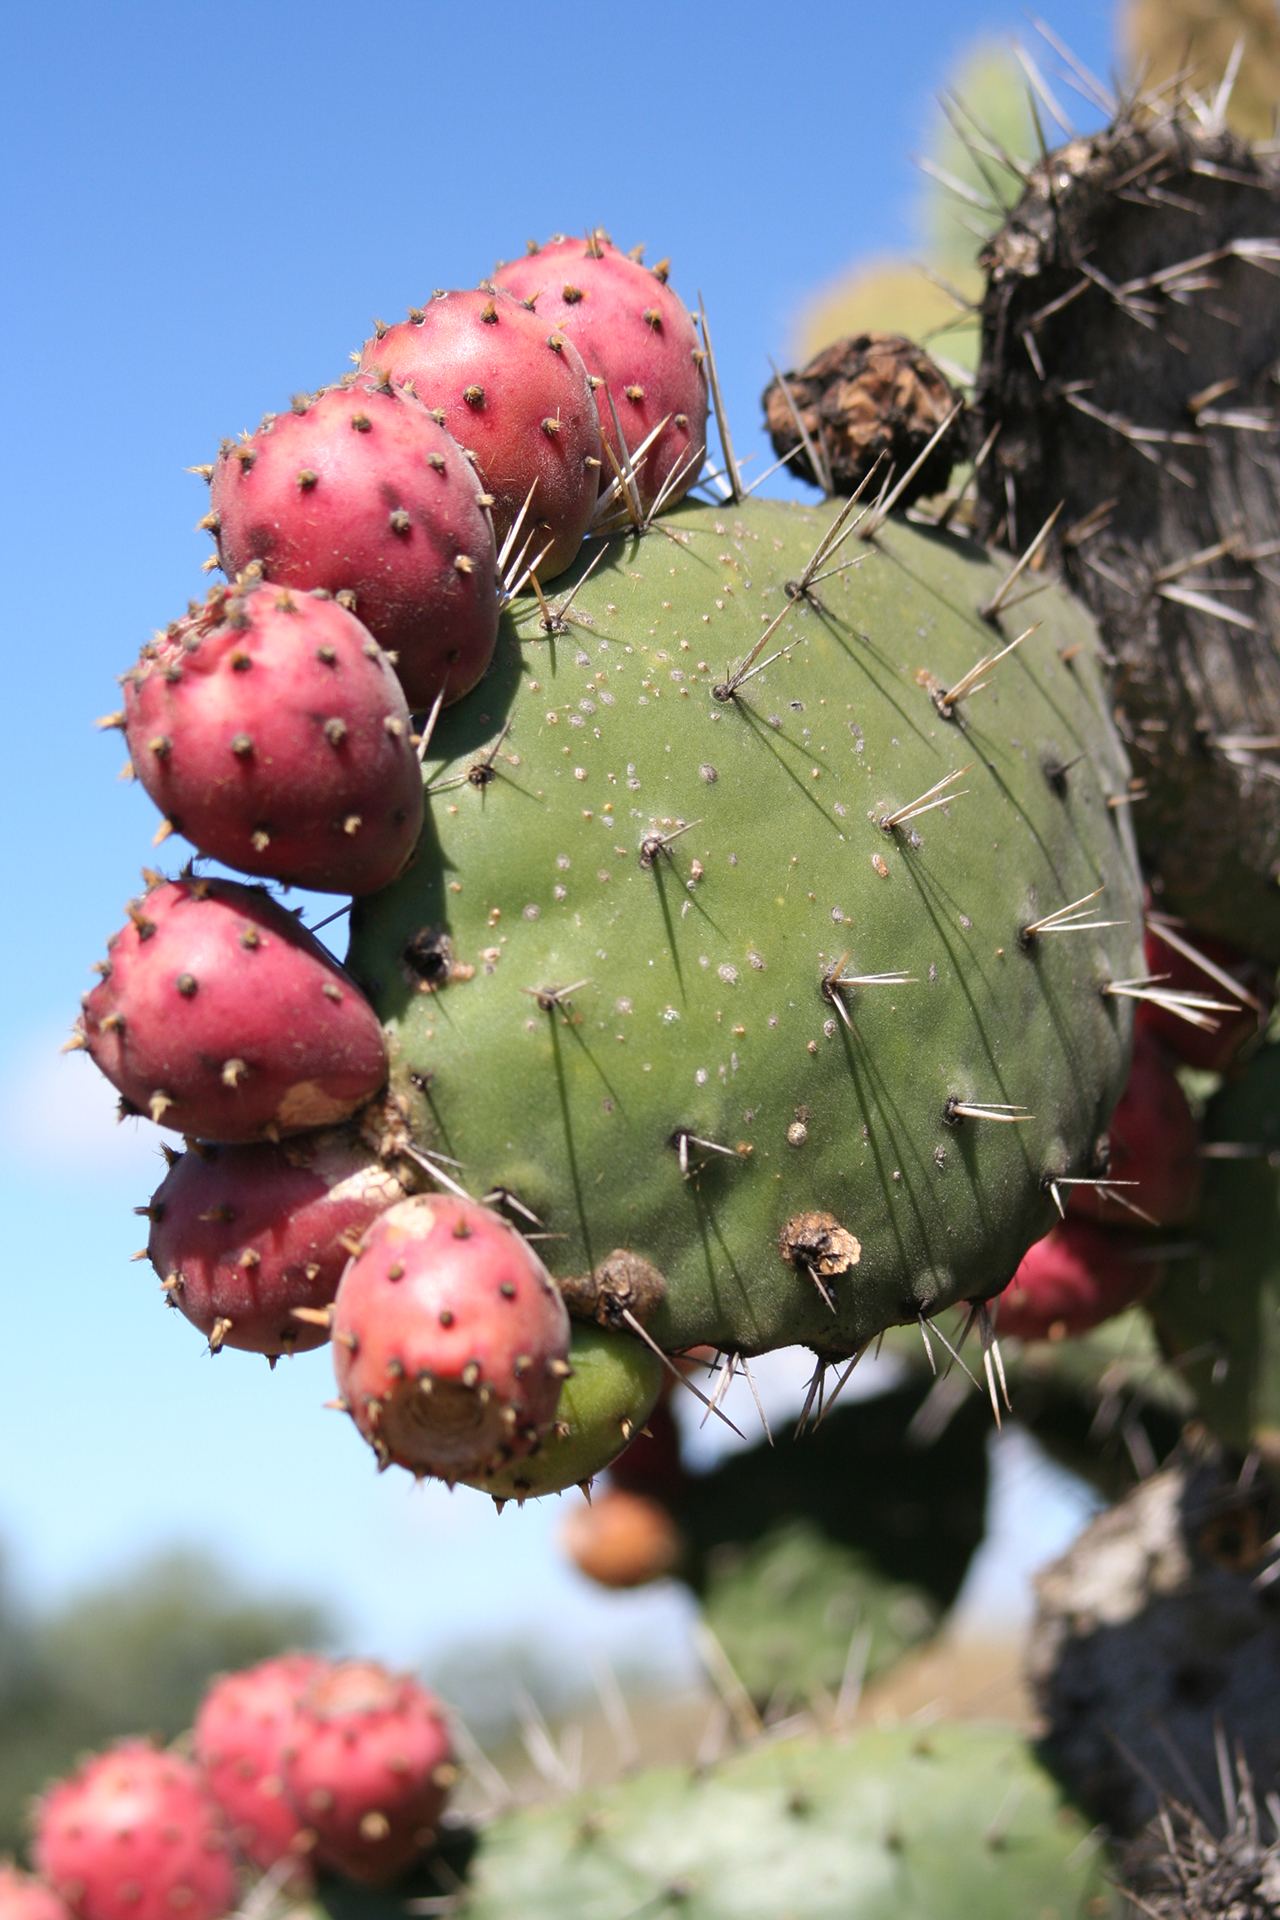 f8a0762df57 You do not even have to buy Prickly pears from a store, since anyone can  grow these ingredients within their own garden if they wish to attempt to  remove ...